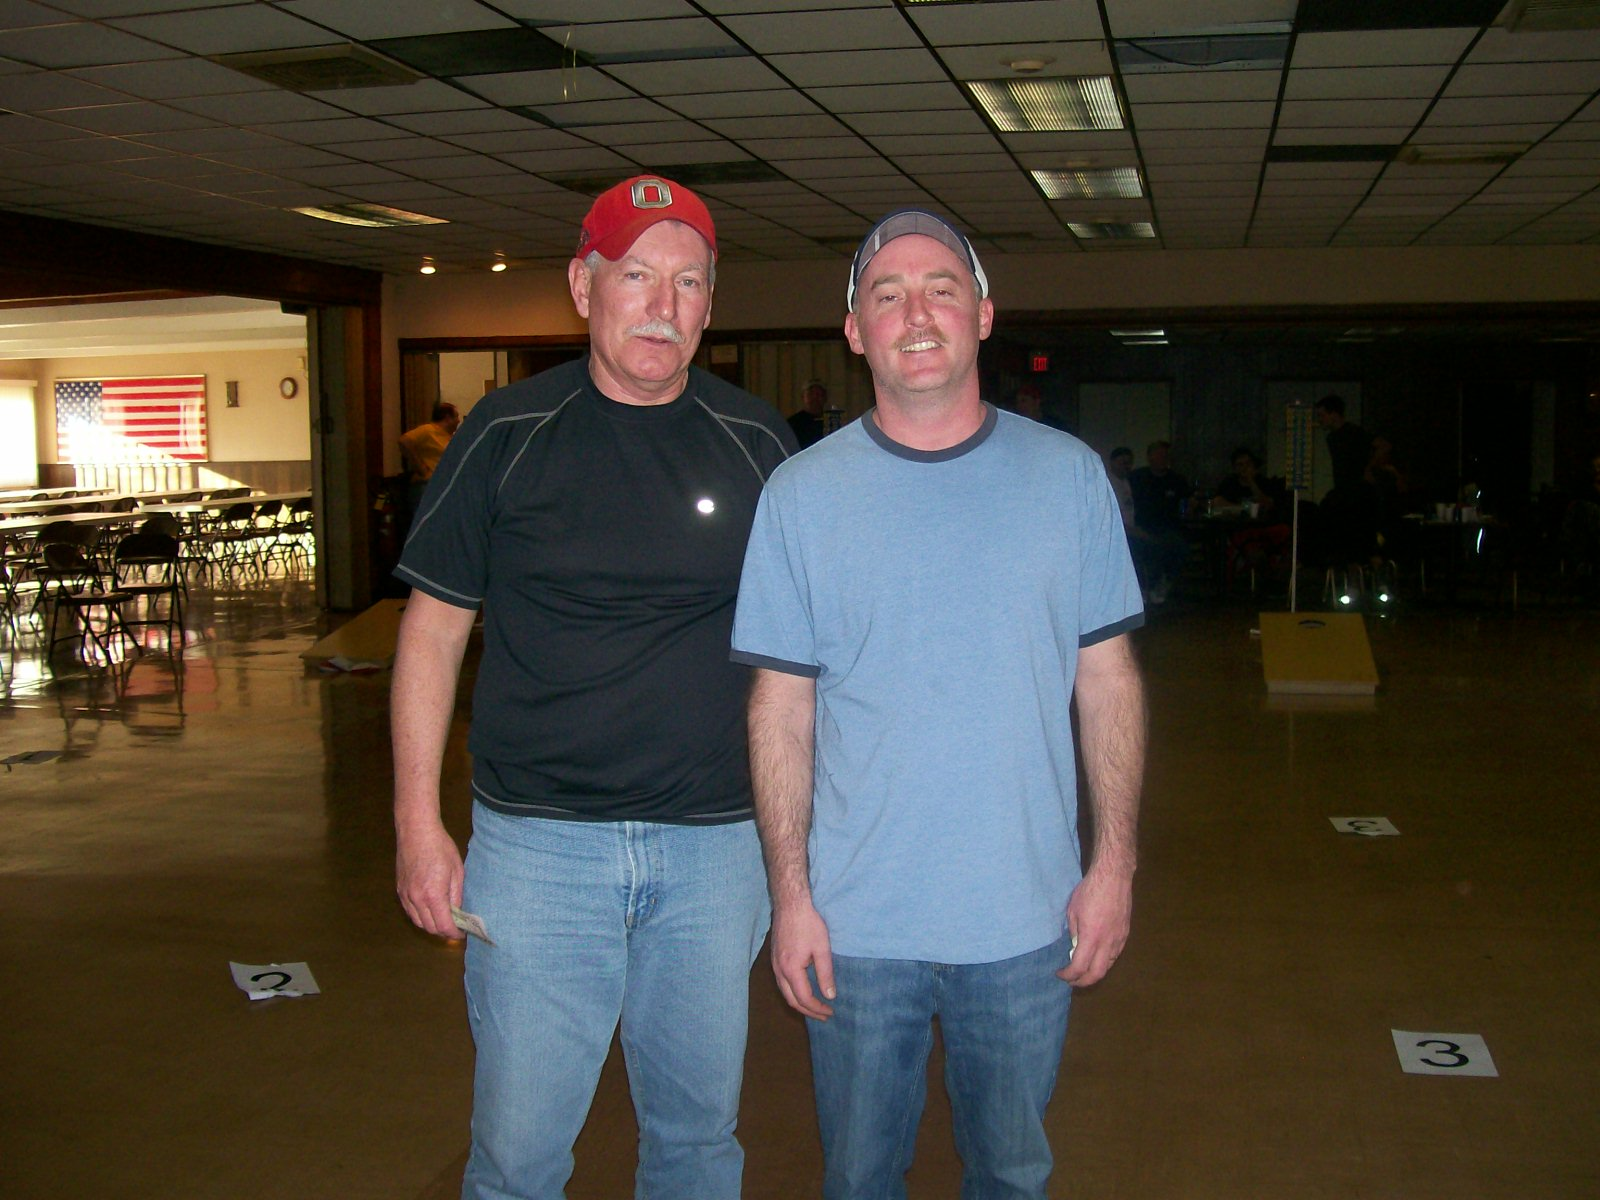 2nd place doubles - Tom Bobo and Mark Allen  (Feb. 19, 2011)